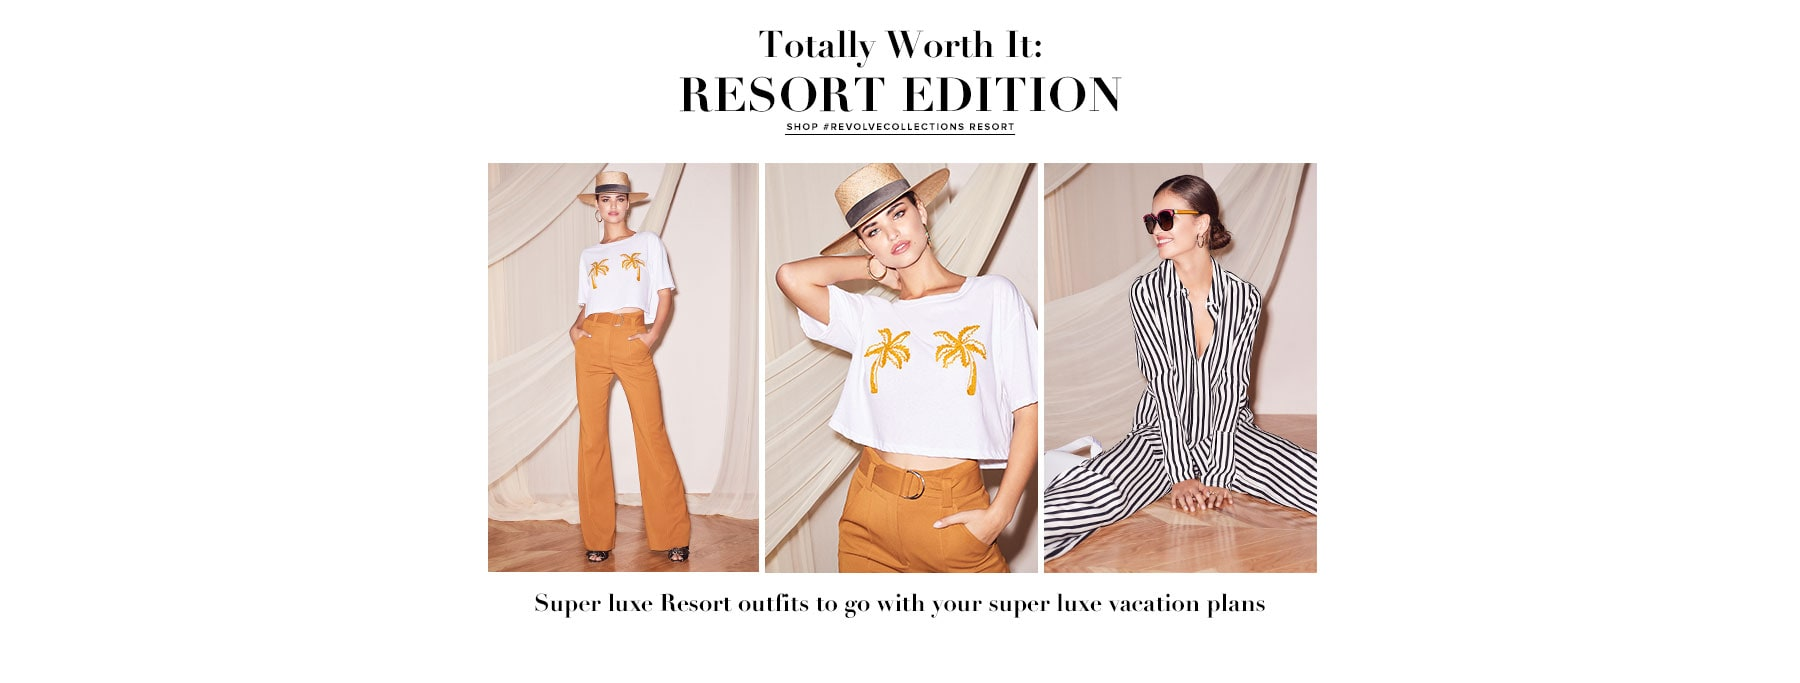 Totally Worth It: Resort Edition. Super luxe Resort outits to go with your super luxe vacation plans. Shop REVOLVECollections.